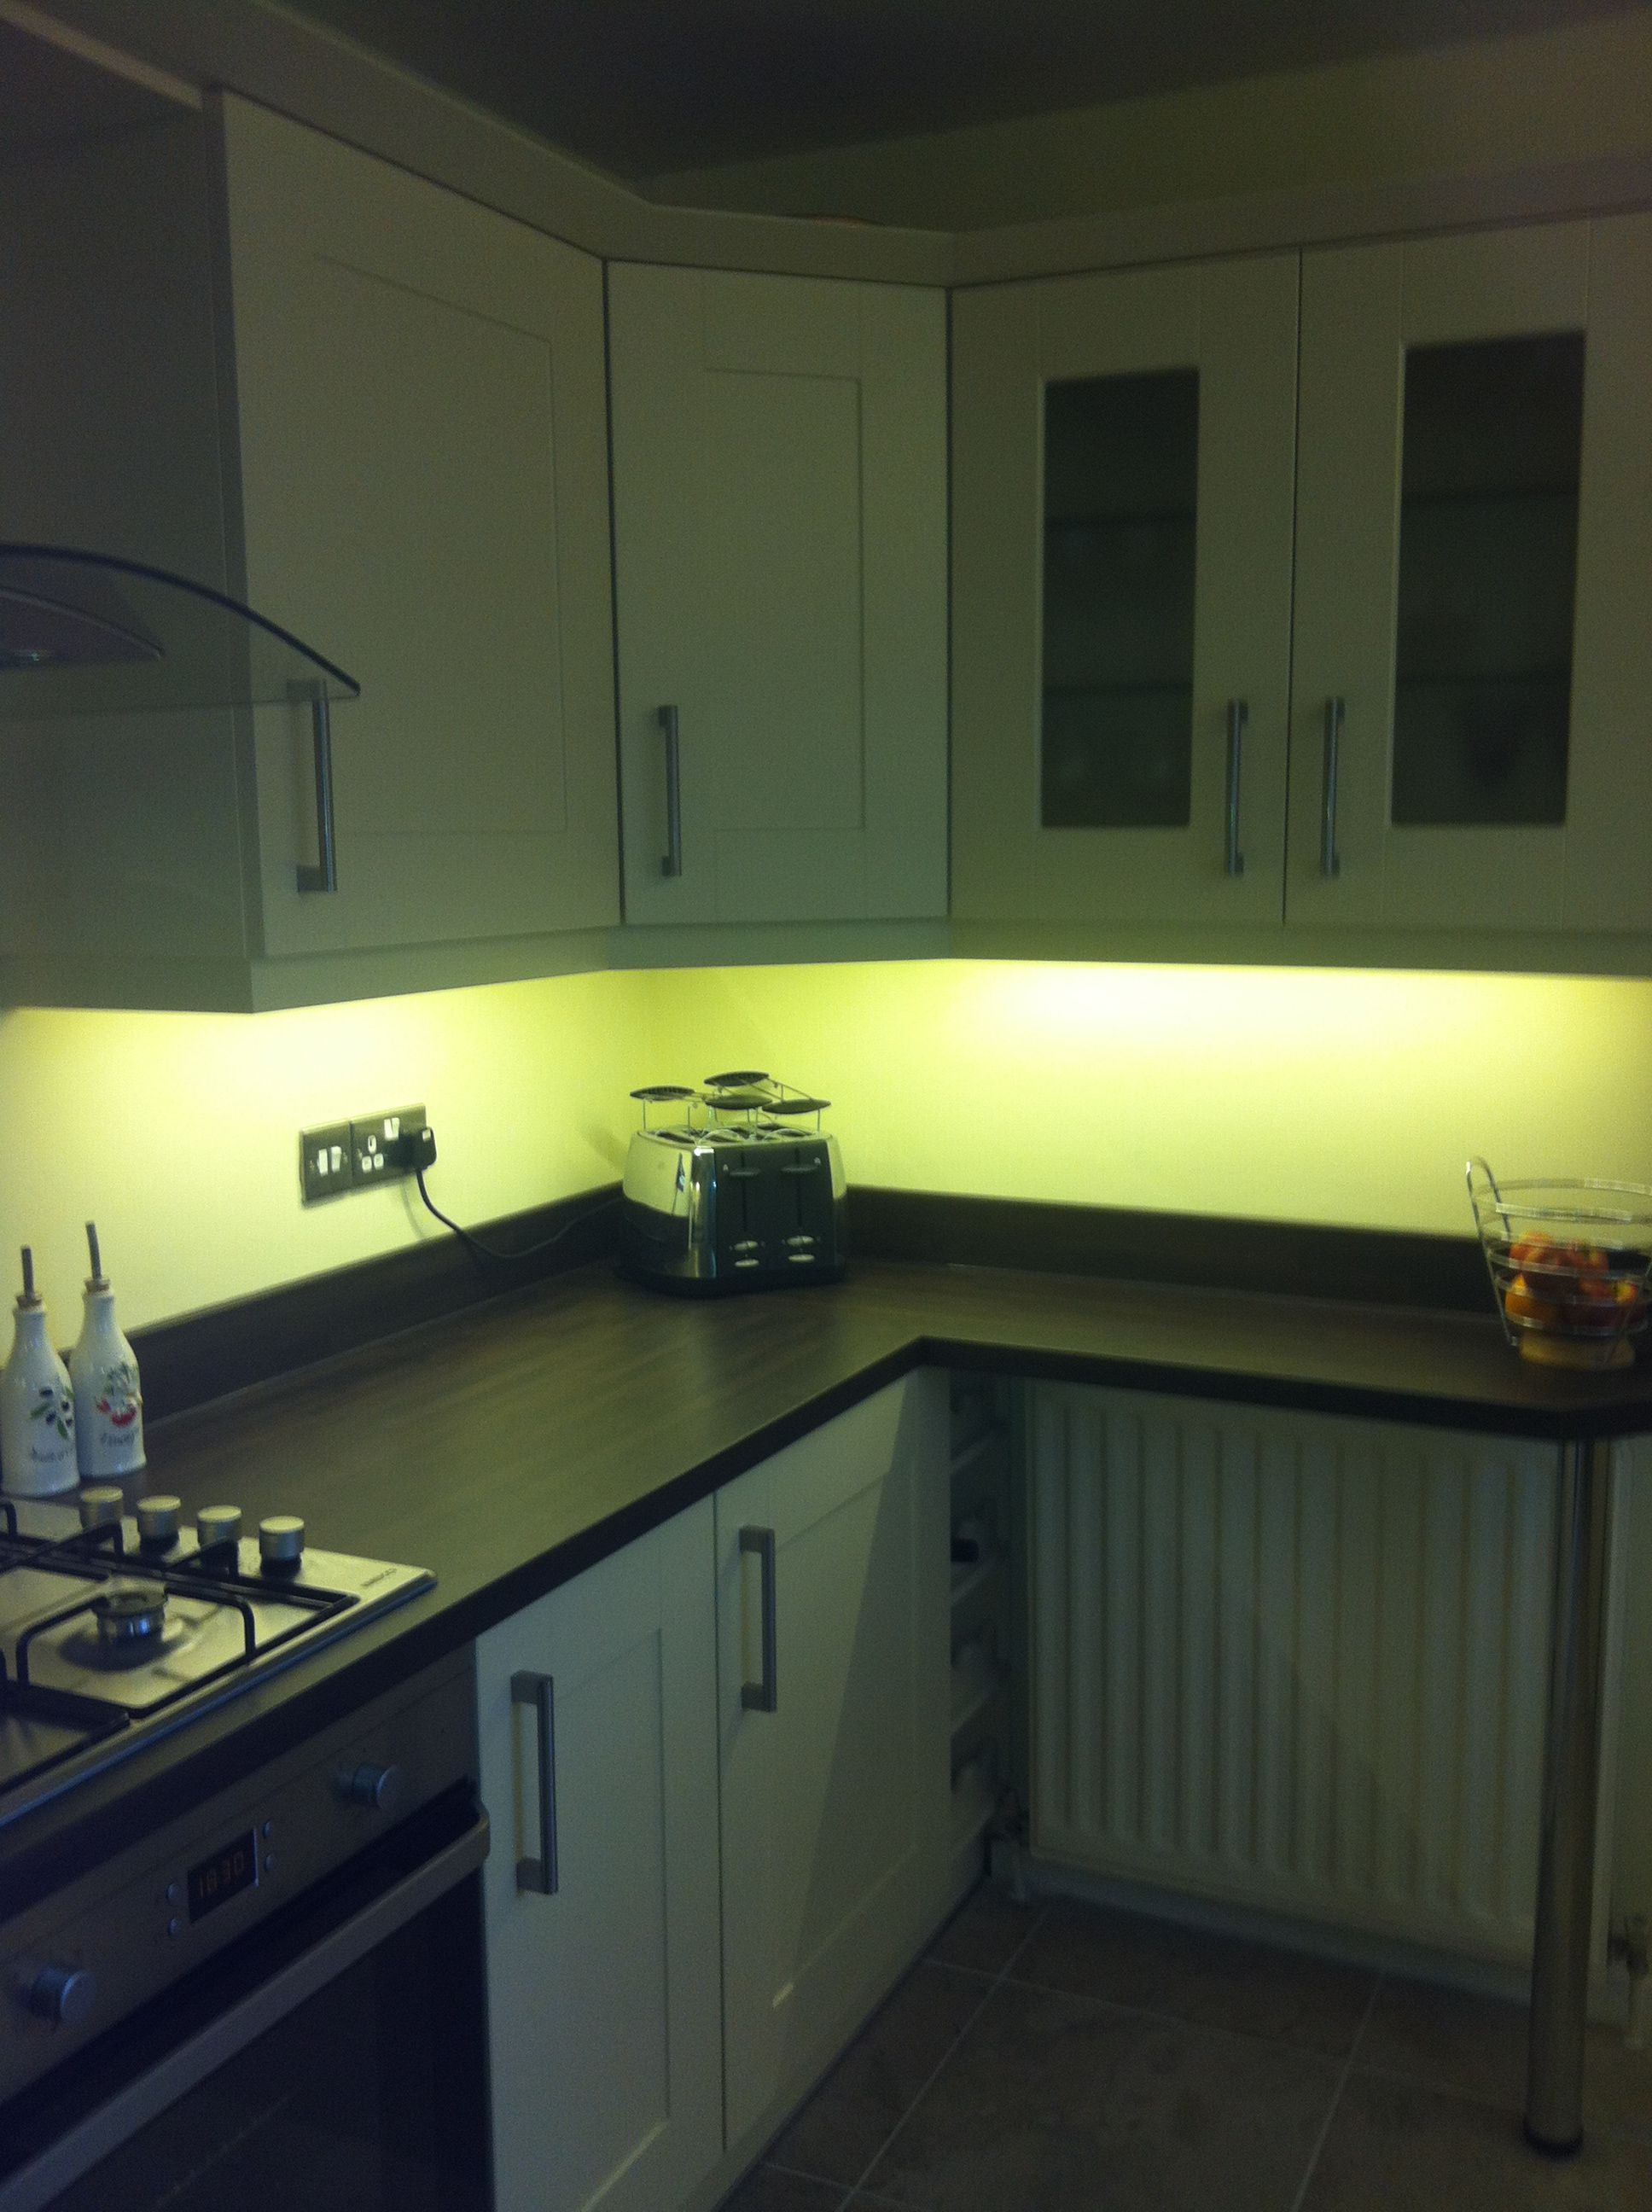 under cupboard kitchen lighting. LED Strip Lights For Under Cupboard Kitchen In Warm White Lighting